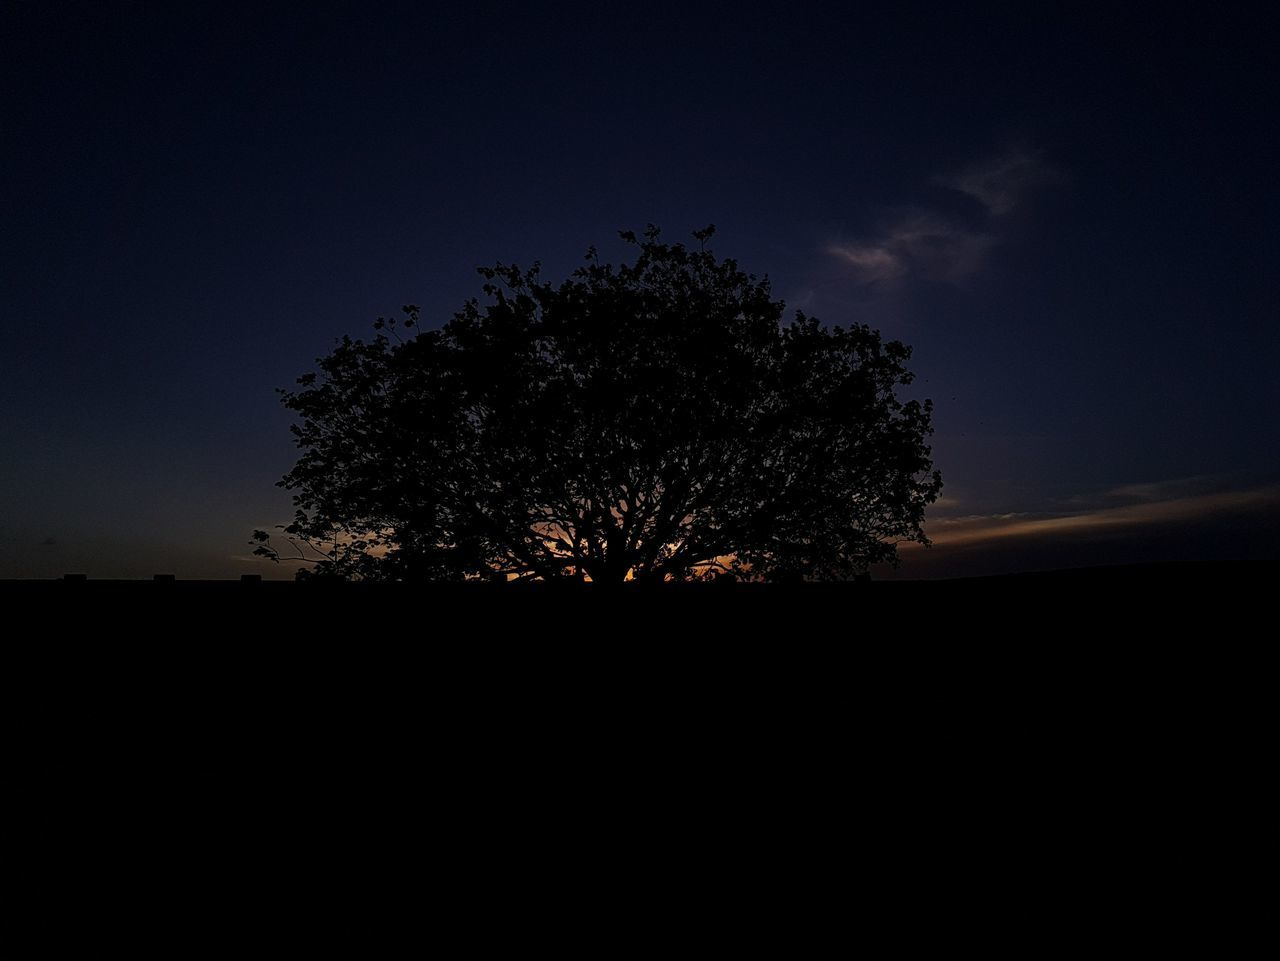 Tree Silhouette Nature Night Beauty In Nature Sky No People Landscape Tranquility Outdoors Scenics Growth Astronomy Bestsellers Premium Collection Brazil Getty Images Tree Sunset Sunshine Sunset Silhouettes Sunshine Silhouettes Nature Live For The Story Place Of Heart The Great Outdoors - 2017 EyeEm Awards EyeEmNewHere Sommergefühle EyeEm Selects